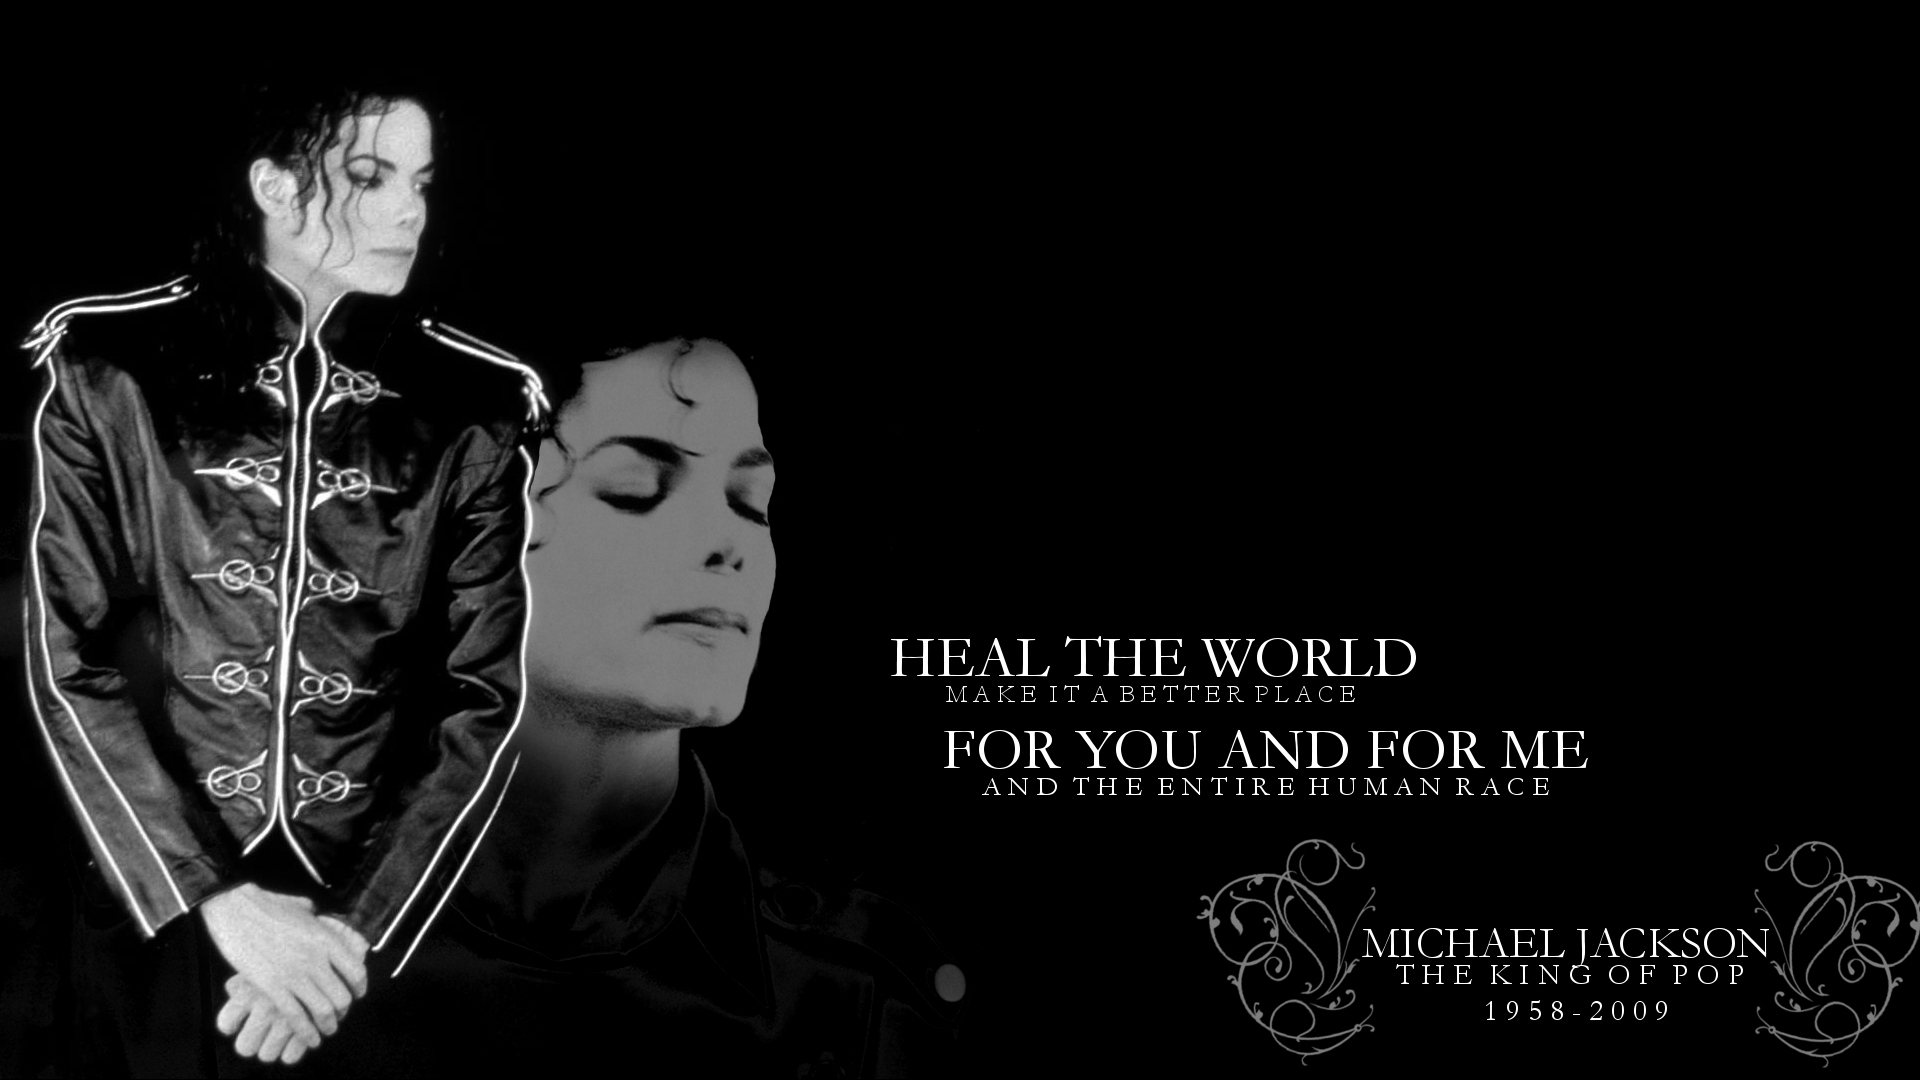 free-images-michael-jackson-backgrounds | wallpaper.wiki